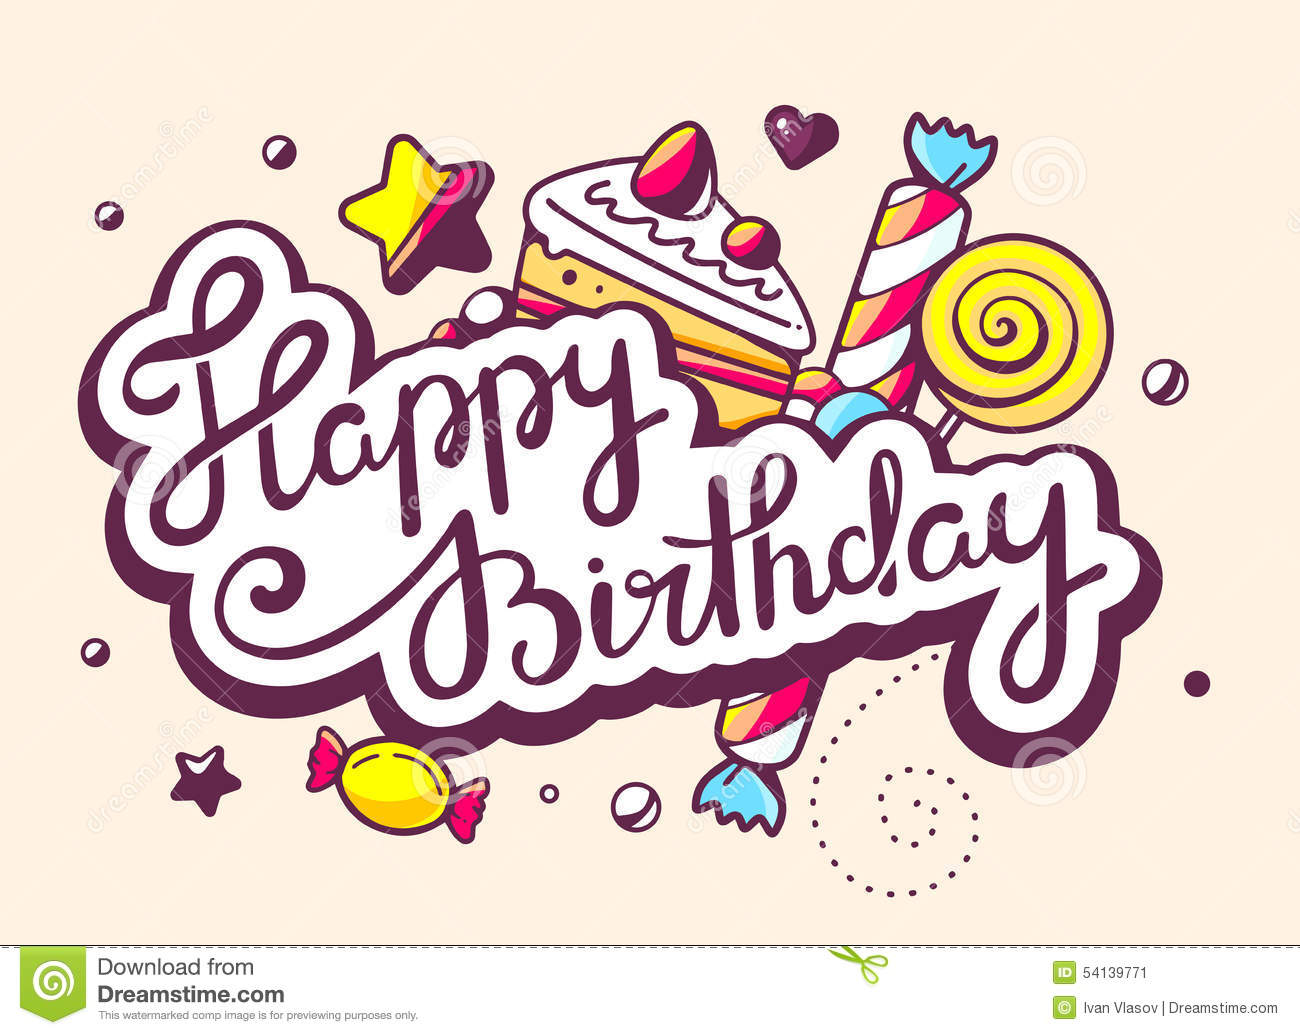 happy birthday art images ; illustration-calligraphy-text-happy-birthday-swee-sweets-light-background-hand-draw-line-art-design-web-site-54139771